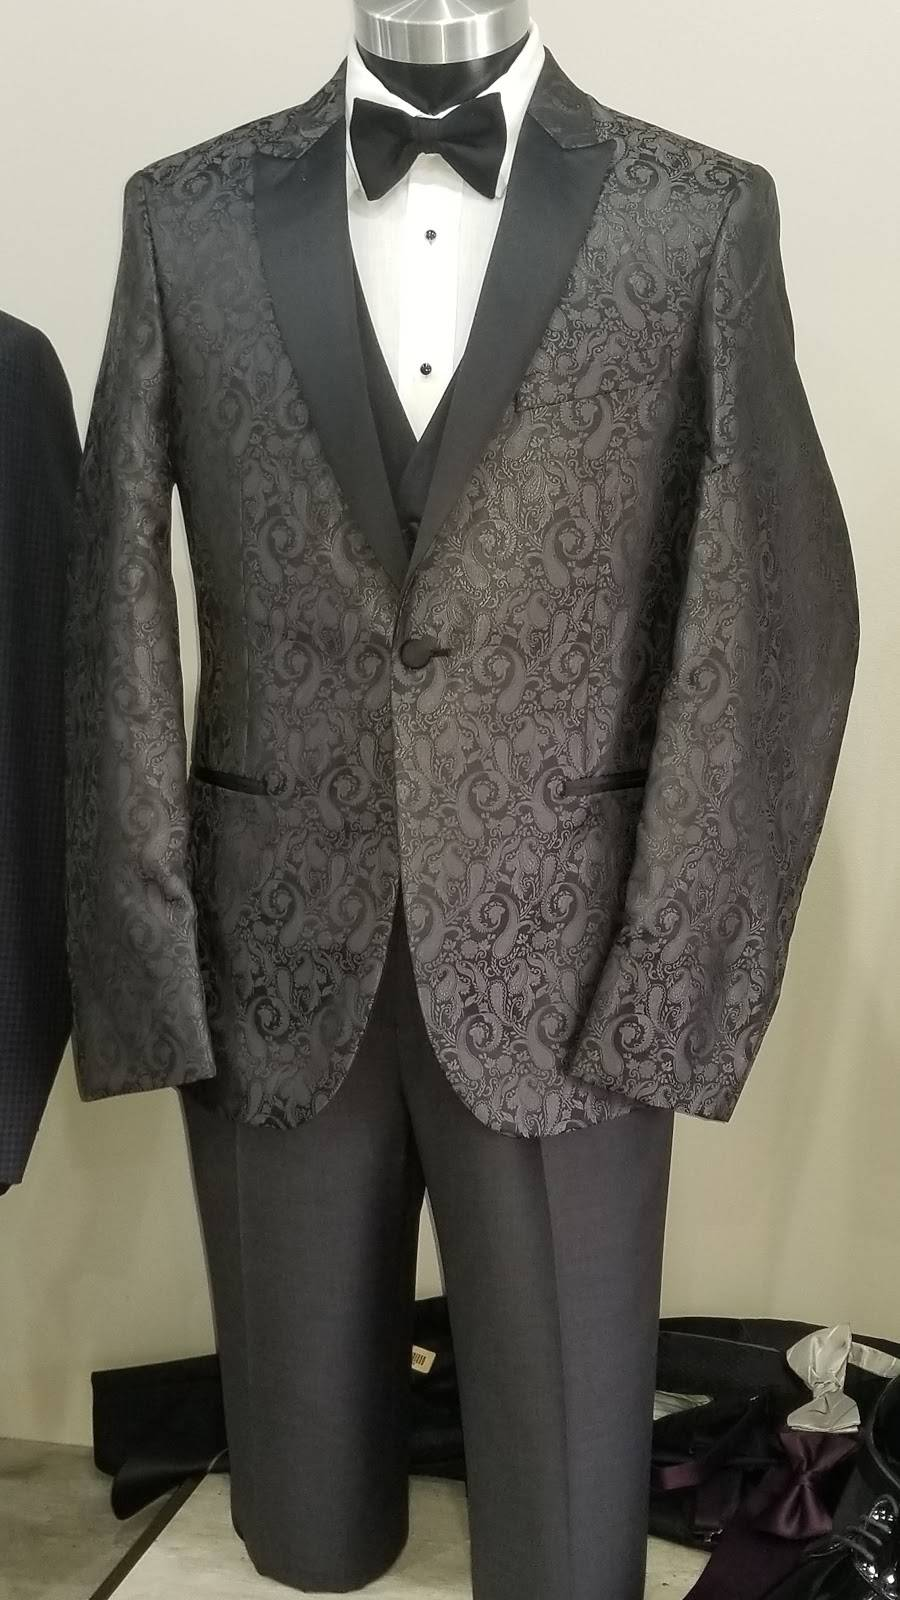 Formally Modern Tuxedo - clothing store  | Photo 6 of 9 | Address: 3933 E 82nd St, Indianapolis, IN 46240, USA | Phone: (317) 579-4889